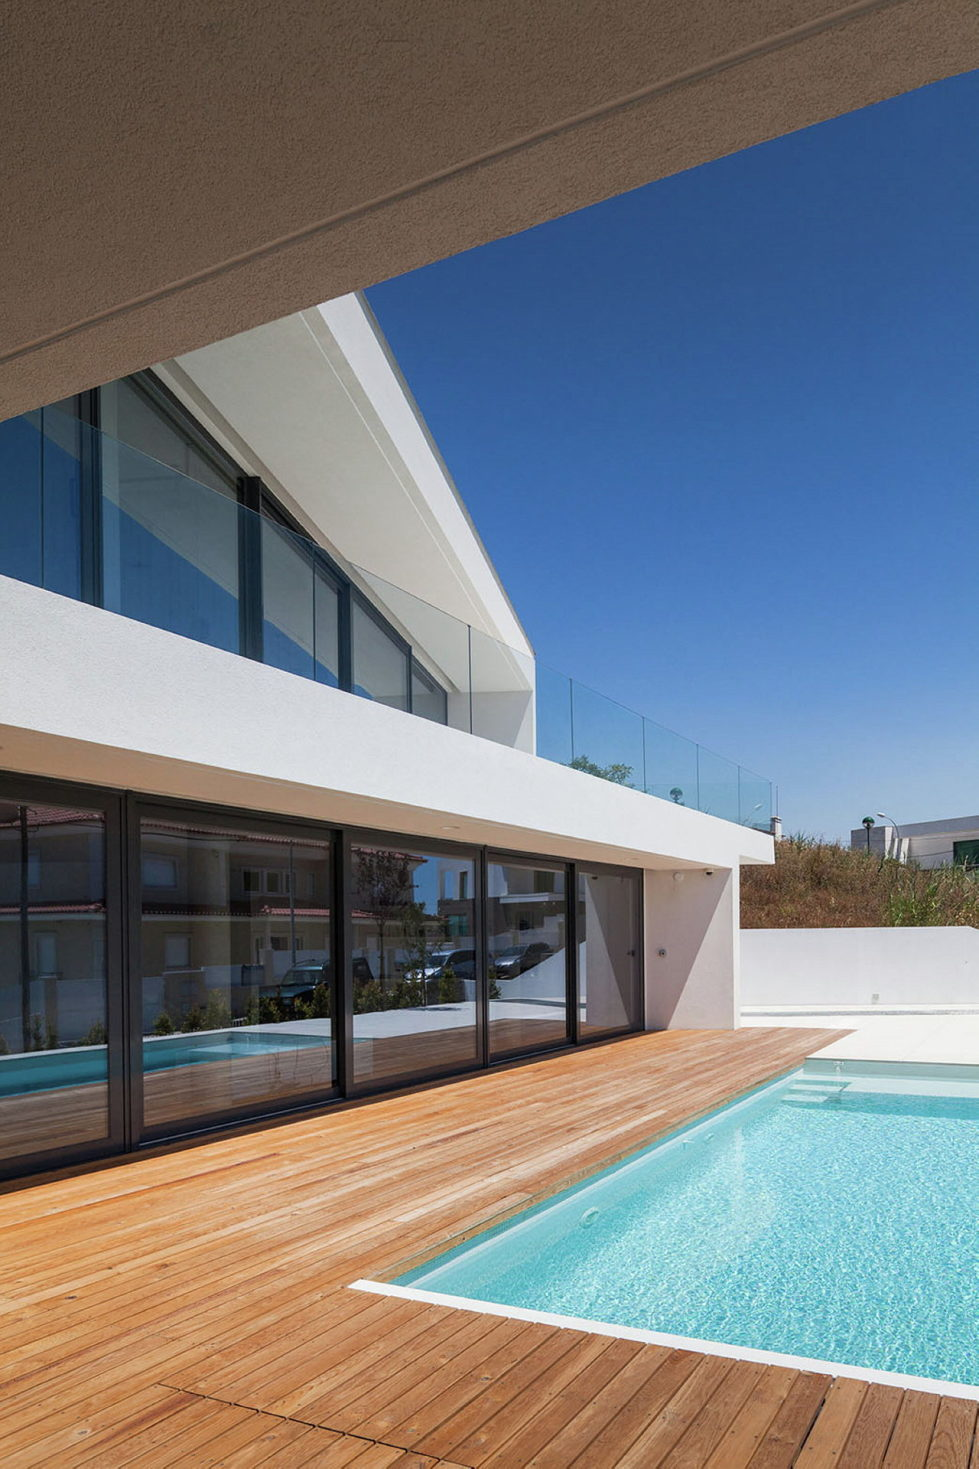 JC House Villa At The Suburb Of Lisbon, Portugal, Upon The Project Of JPS Atelier 23